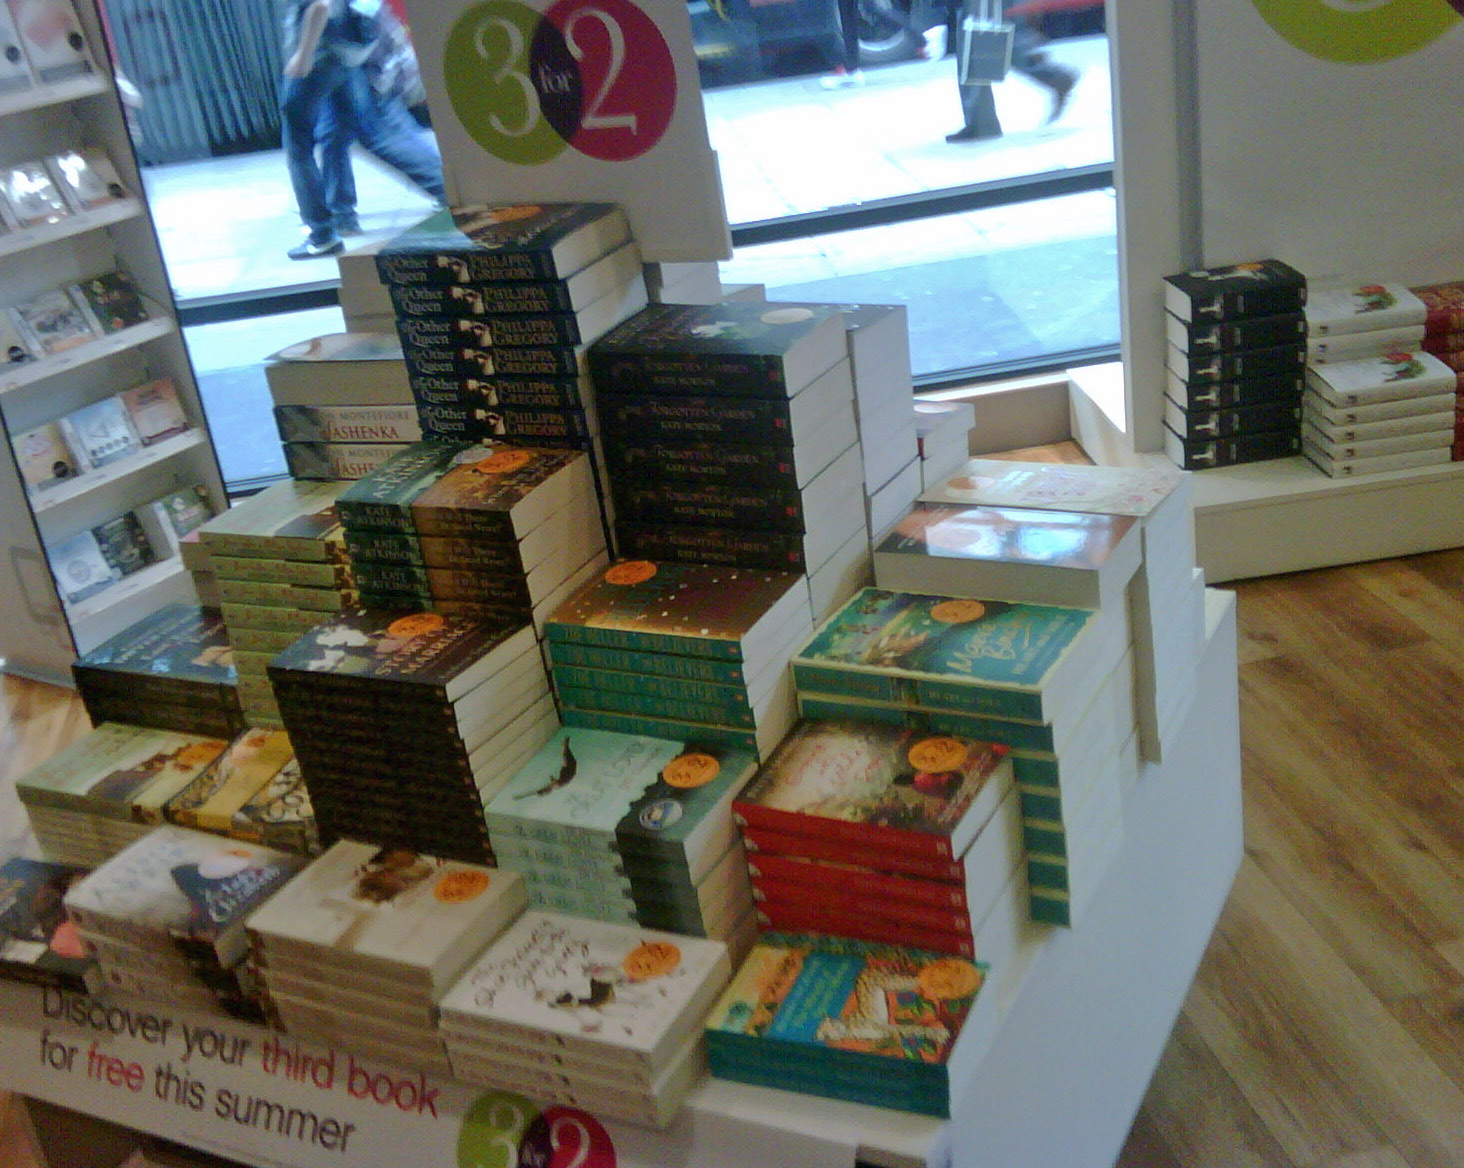 SP at Waterstones Oxford St, London